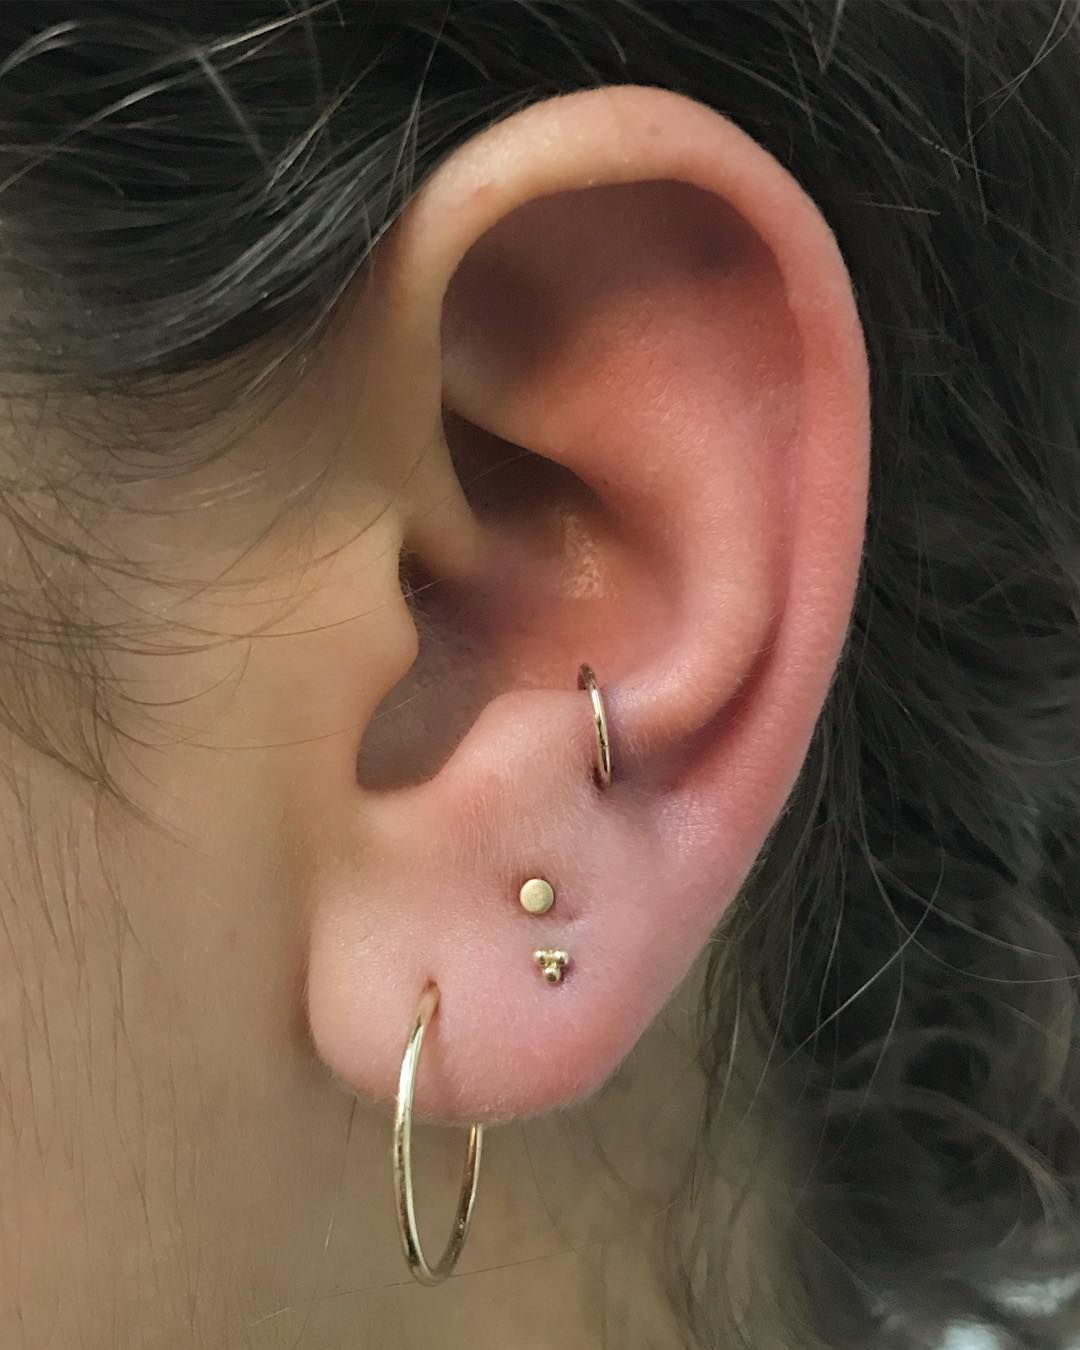 Nose piercing without earring  Pin by Ana Potočnik on jewelry  Pinterest  Piercings Trust and